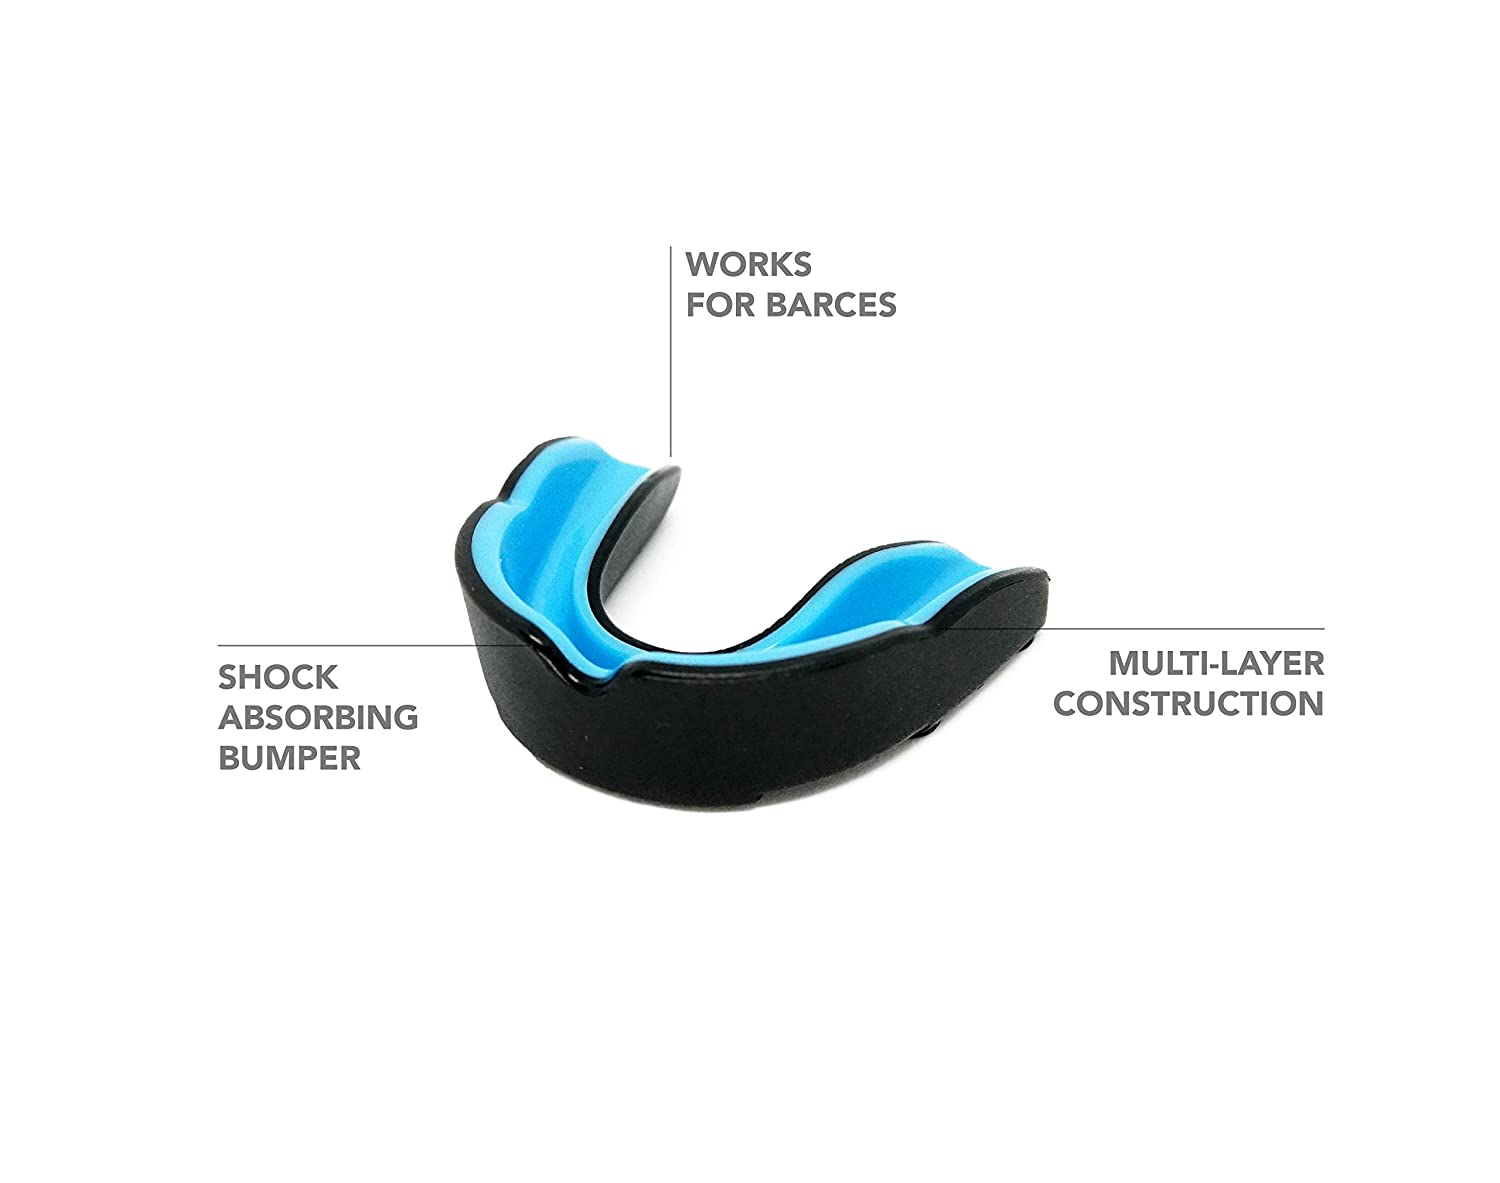 Alfarolamas Mouth Guard Sports for Kids and Adults Hockey Braces BJJ Boxing BPA Free Fight /& Faith Rugby and Other Contact Sports Youth Lacrosse Football Sportwear Best Protection for MMA